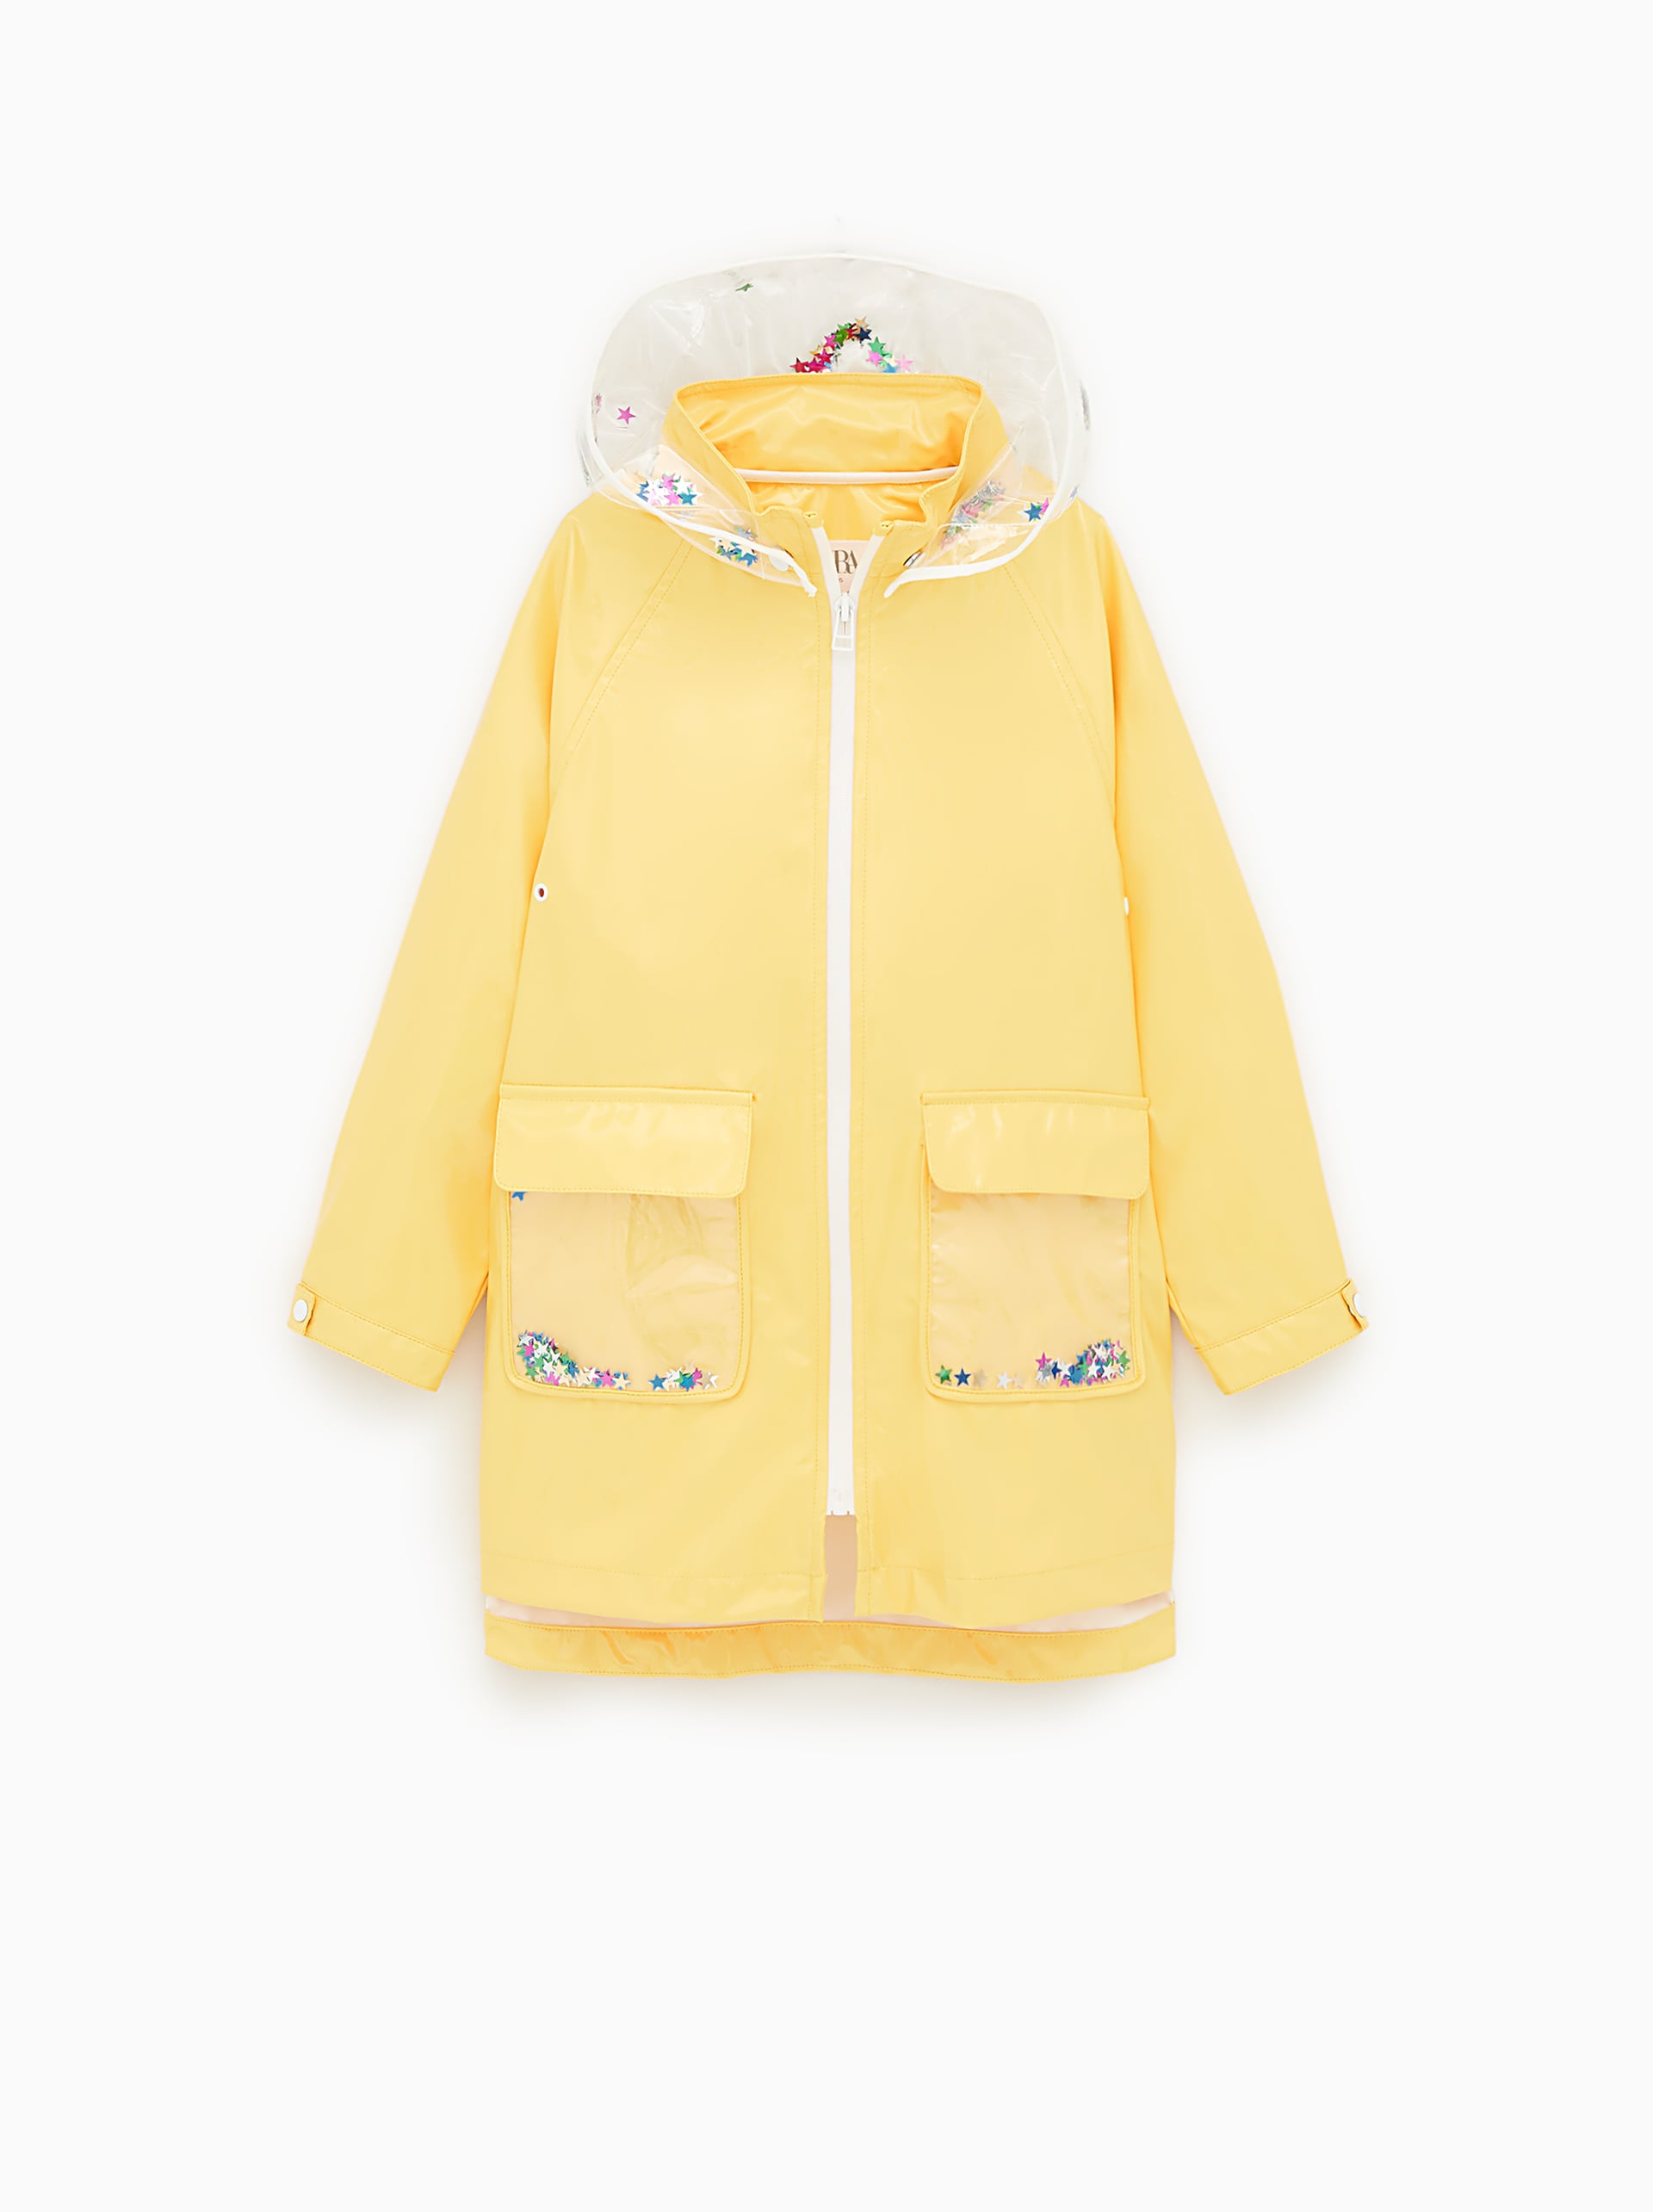 62e6146b TRANSPARENT RAINCOAT WITH SEQUINS - COATS AND JACKETS-GIRL | 5-14 ...